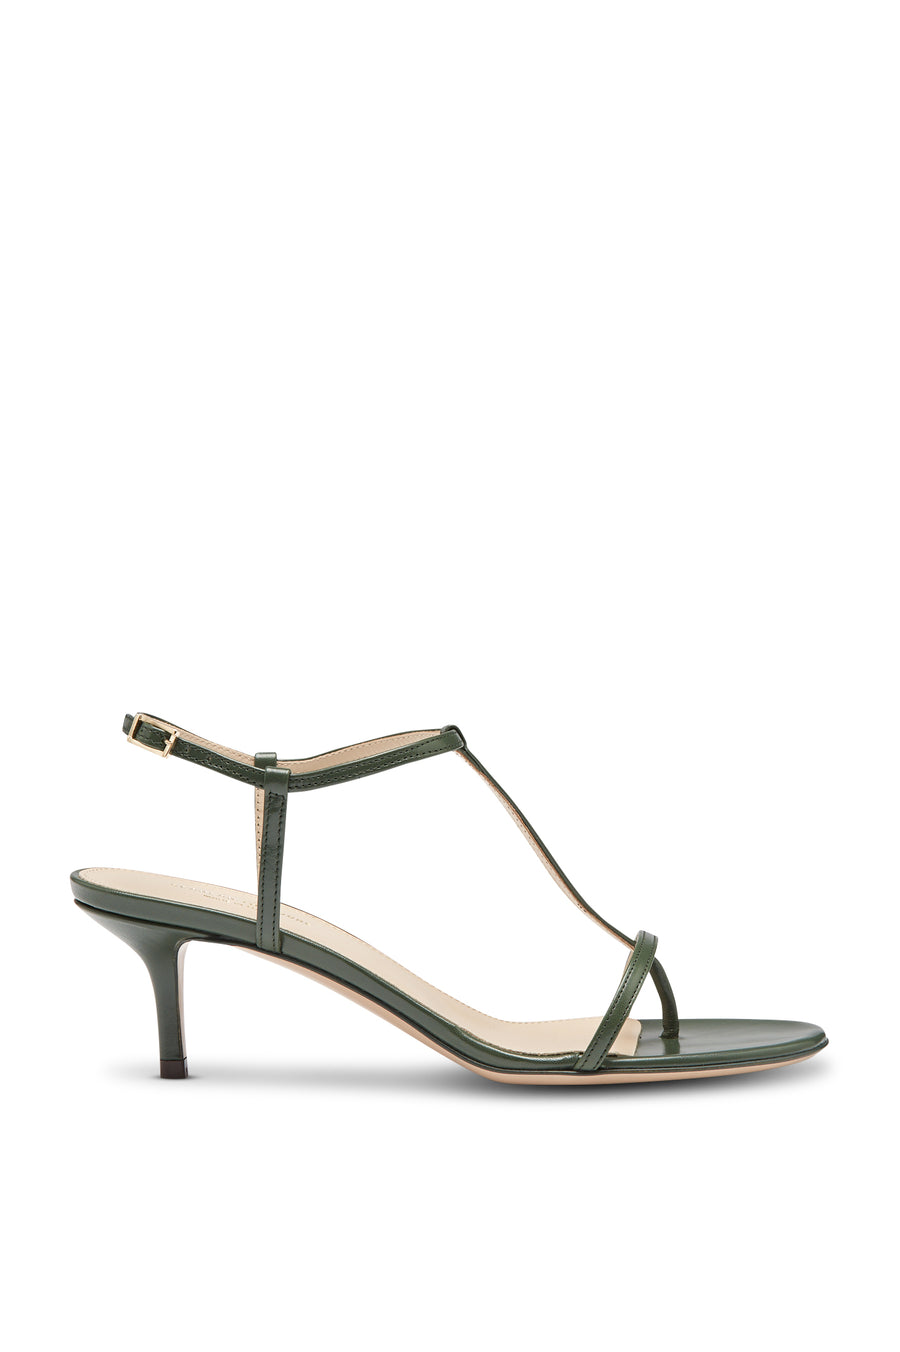 T-BAR SANDAL 5.5, Heel measurement is approximately 5.5cm